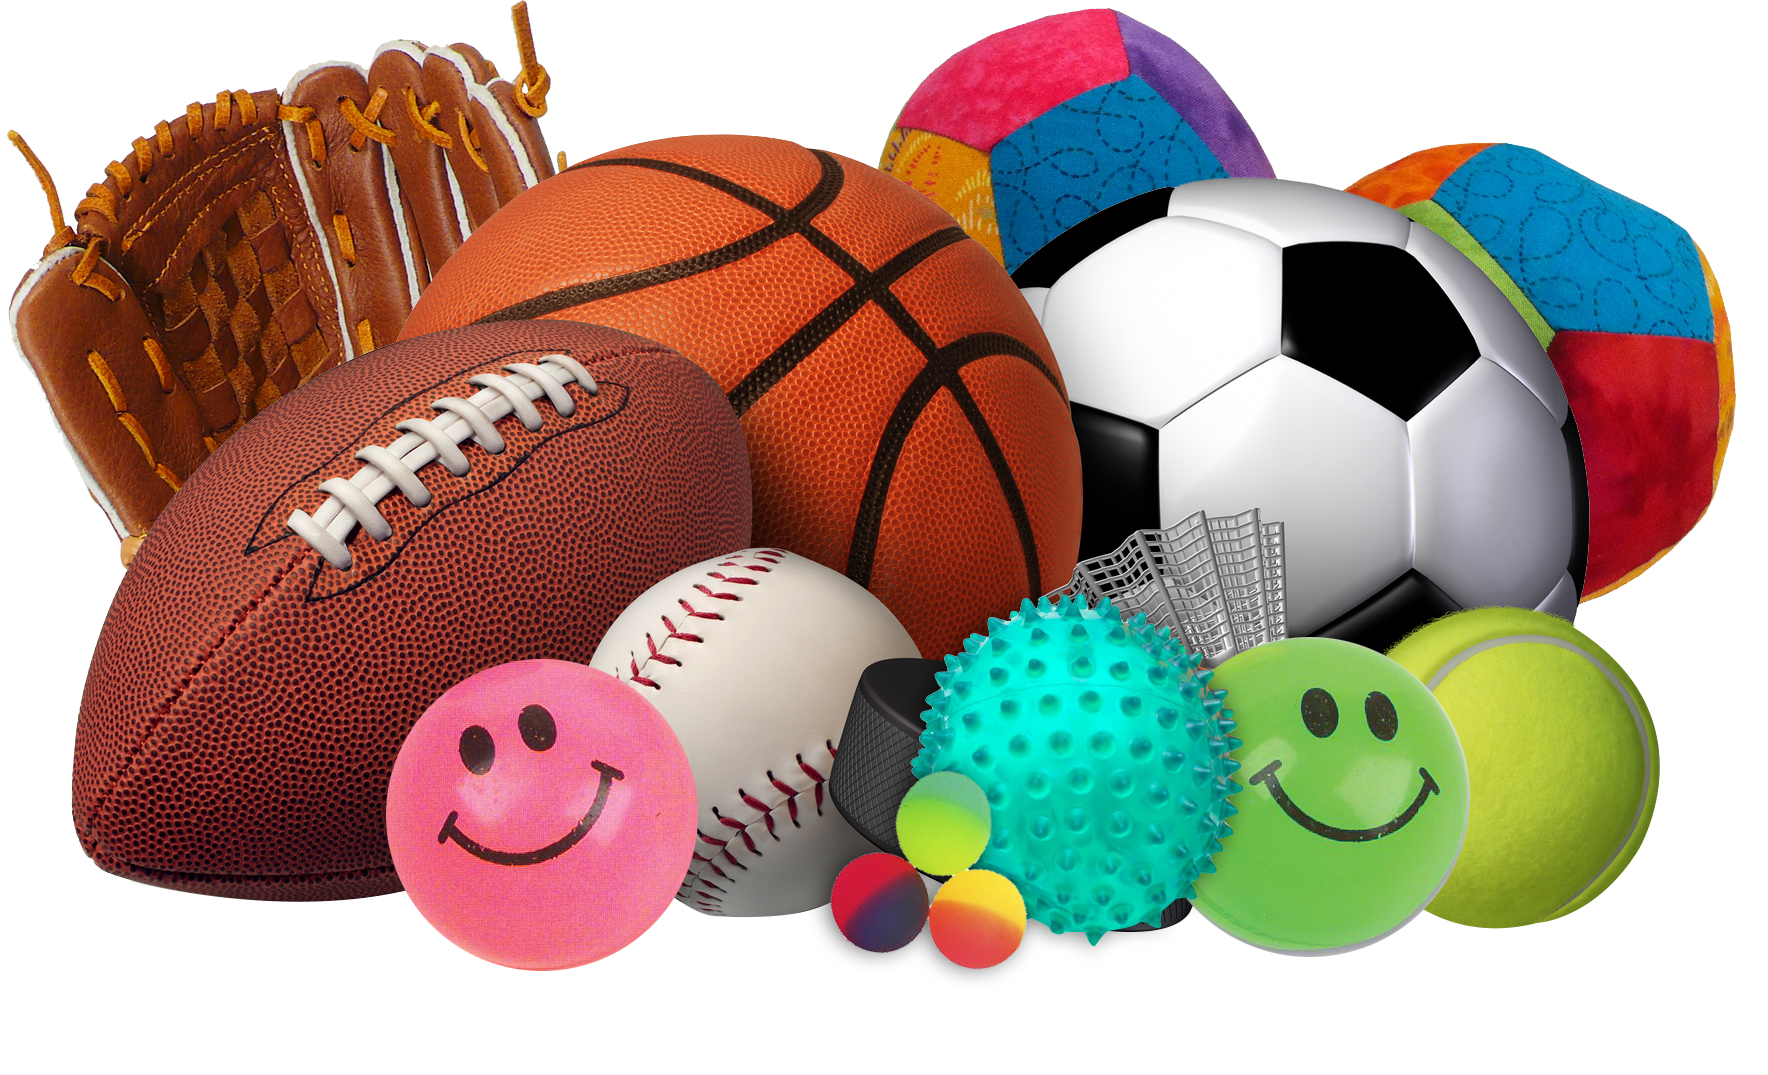 Image result for png images of kids sports balls